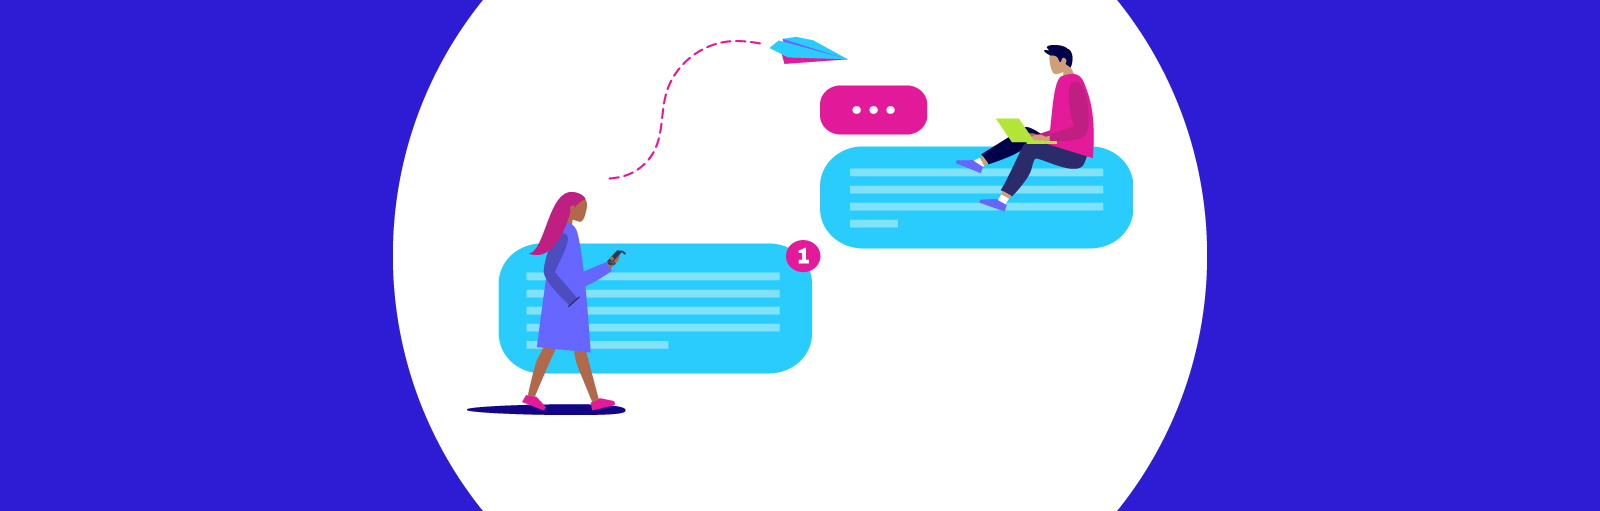 10 tips for brands to make the most of SMS customer service